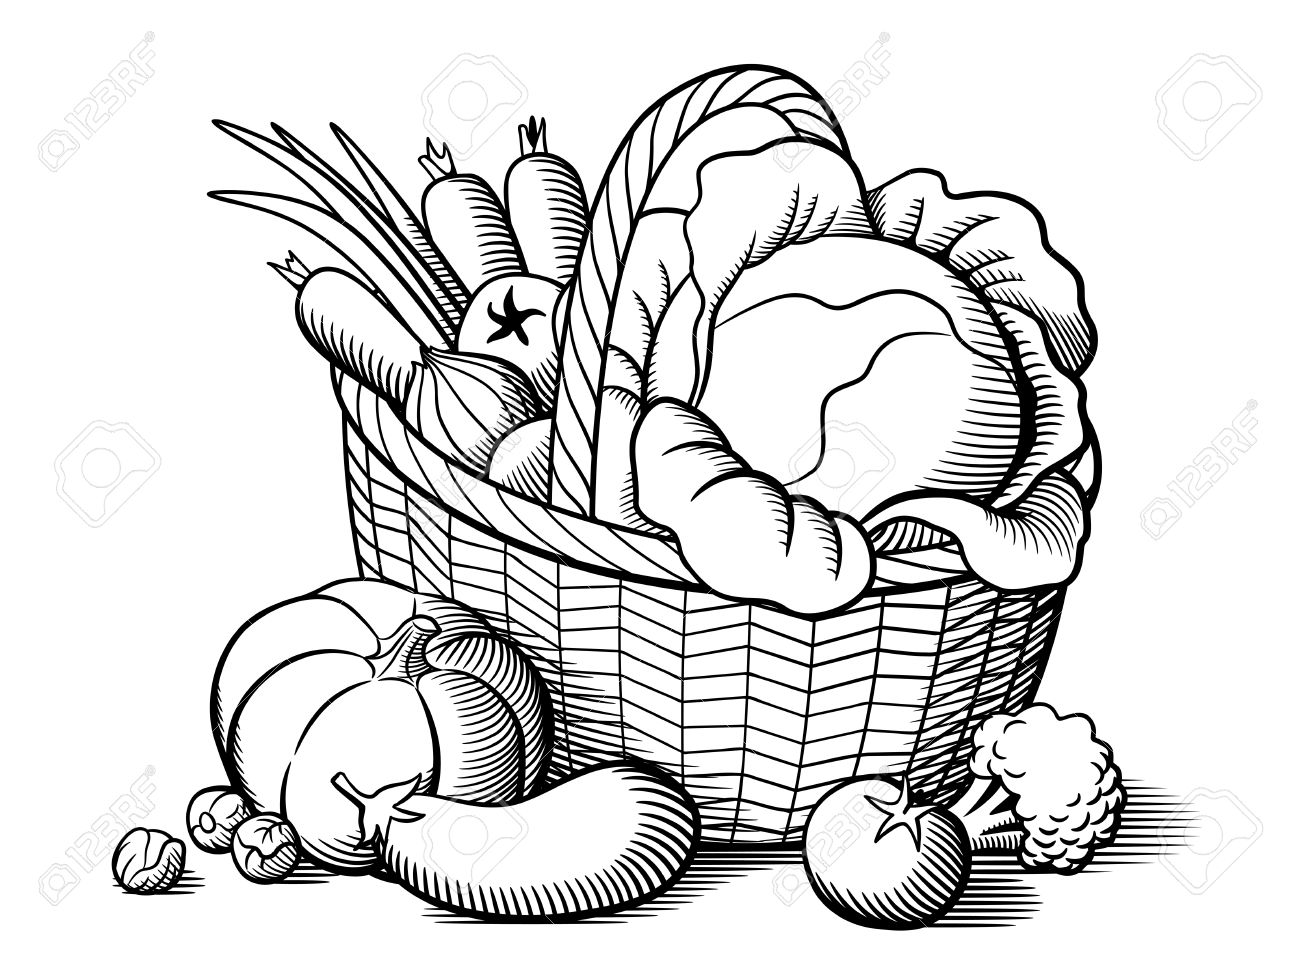 1300x974 Basket With Vegetables. Stylized Black And White Vector